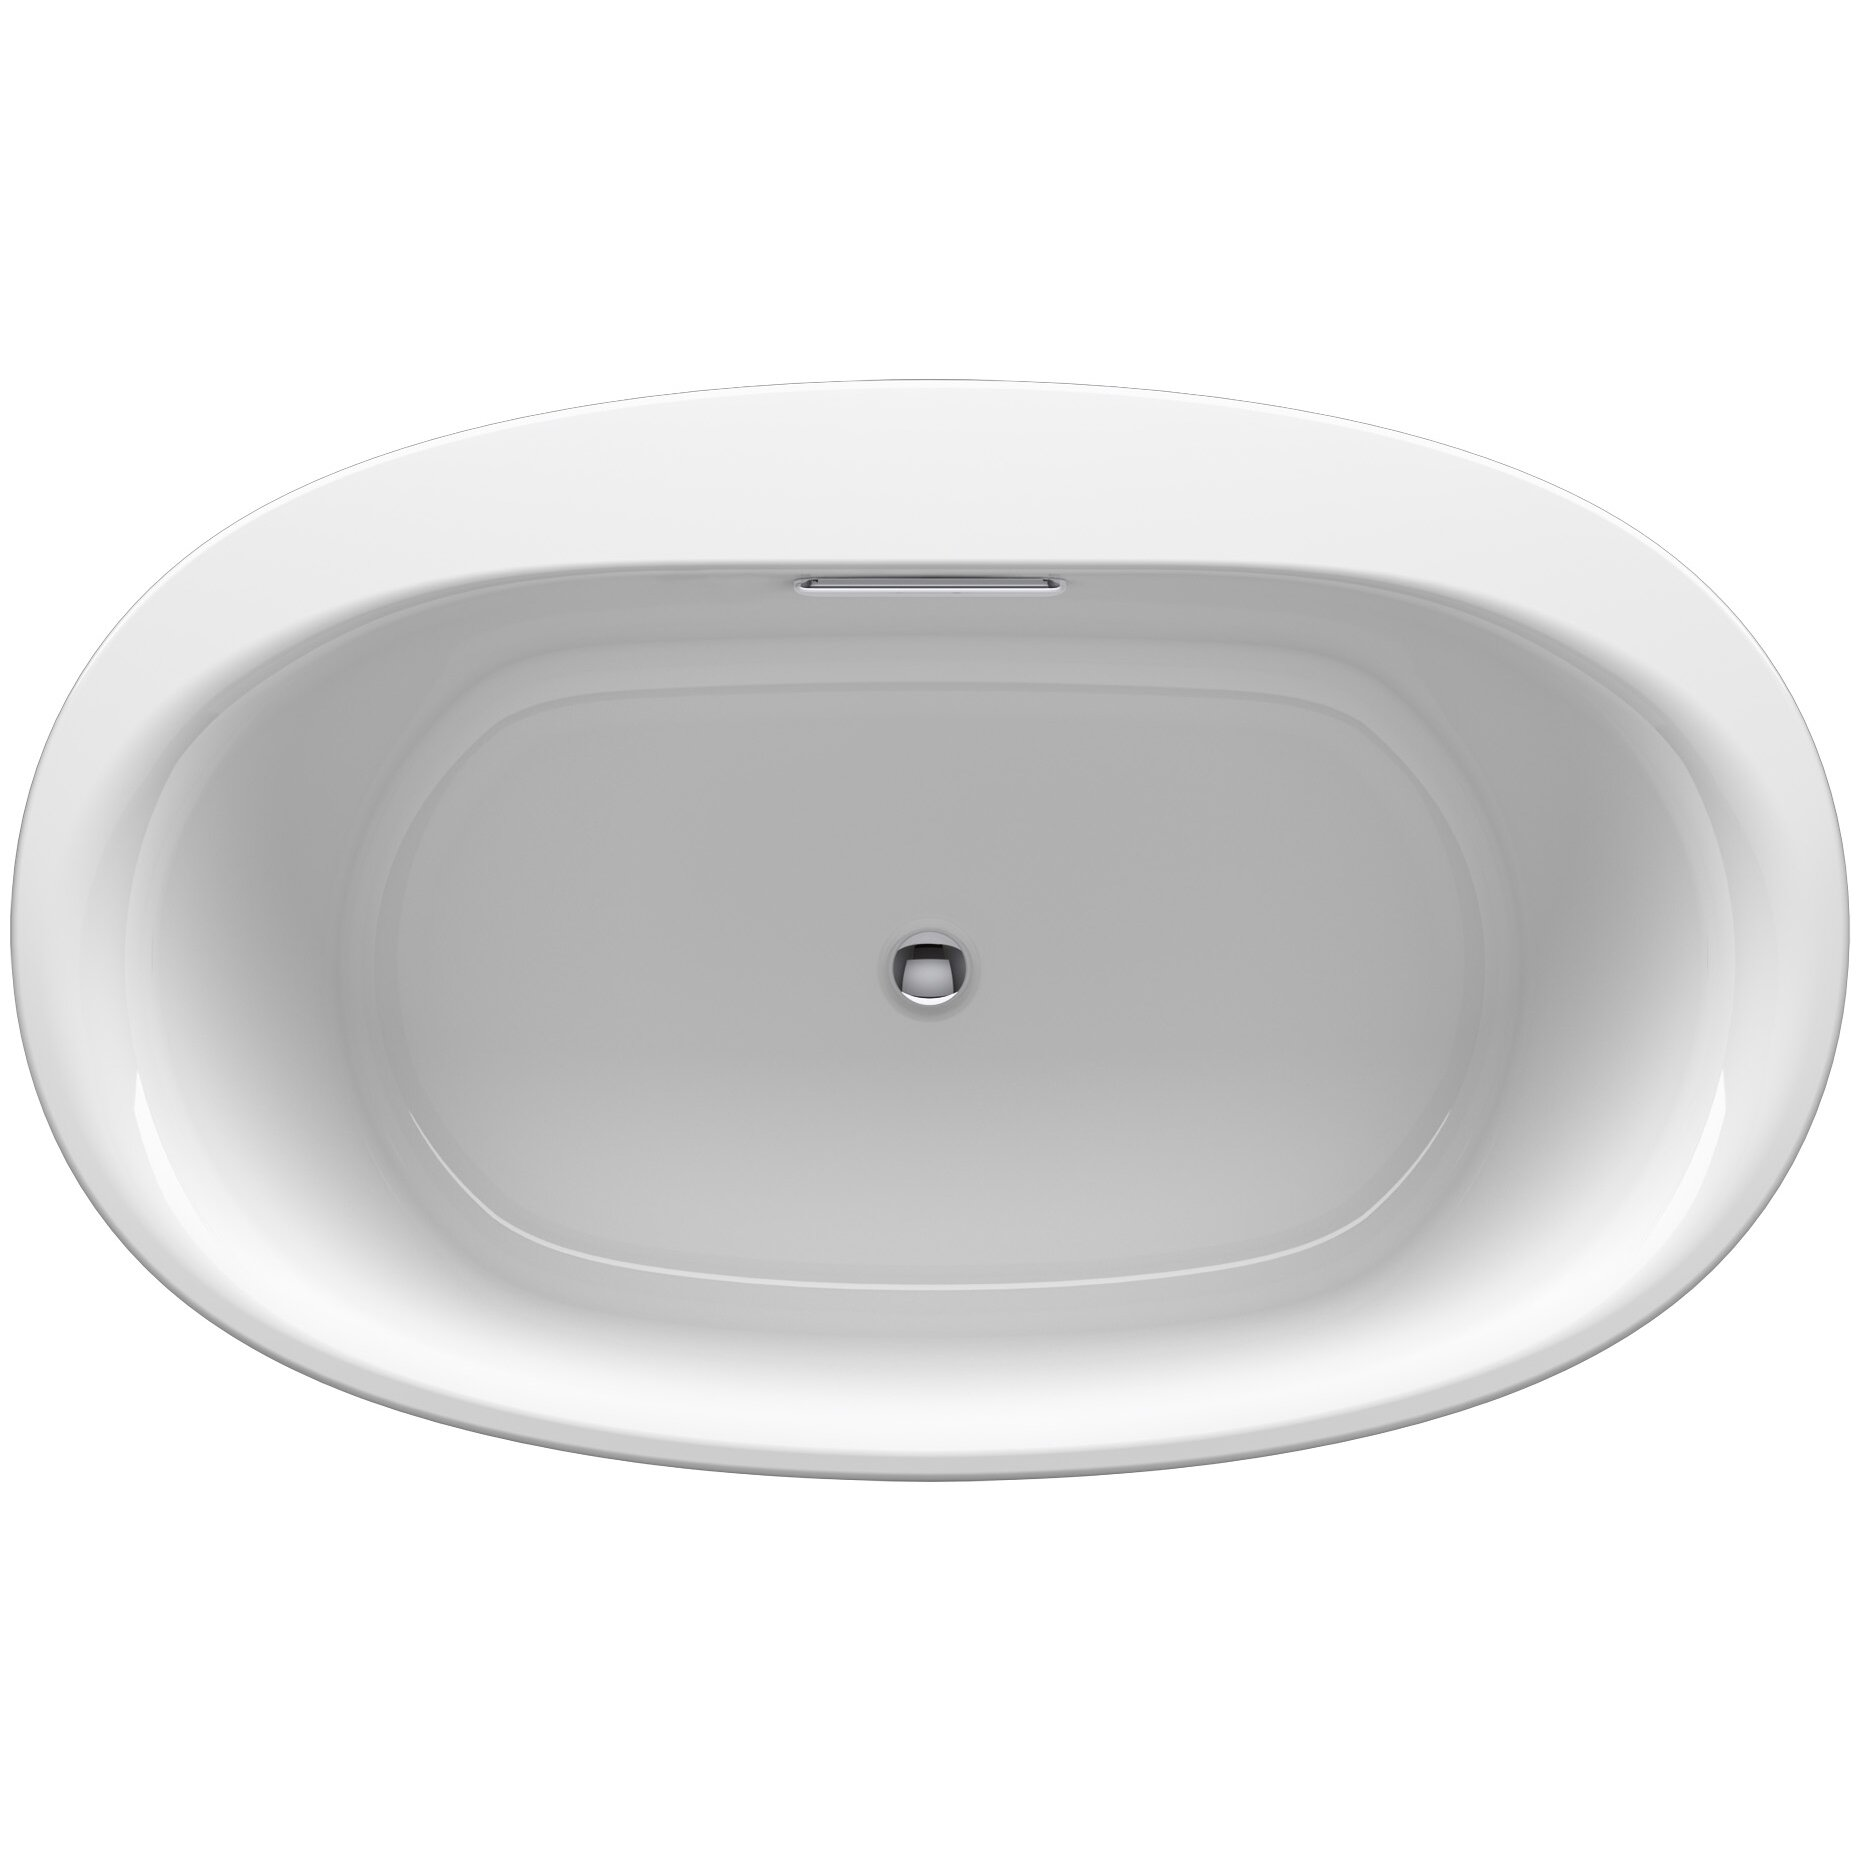 bathroom fixtures kohler part k 5701 2m sku koh20857